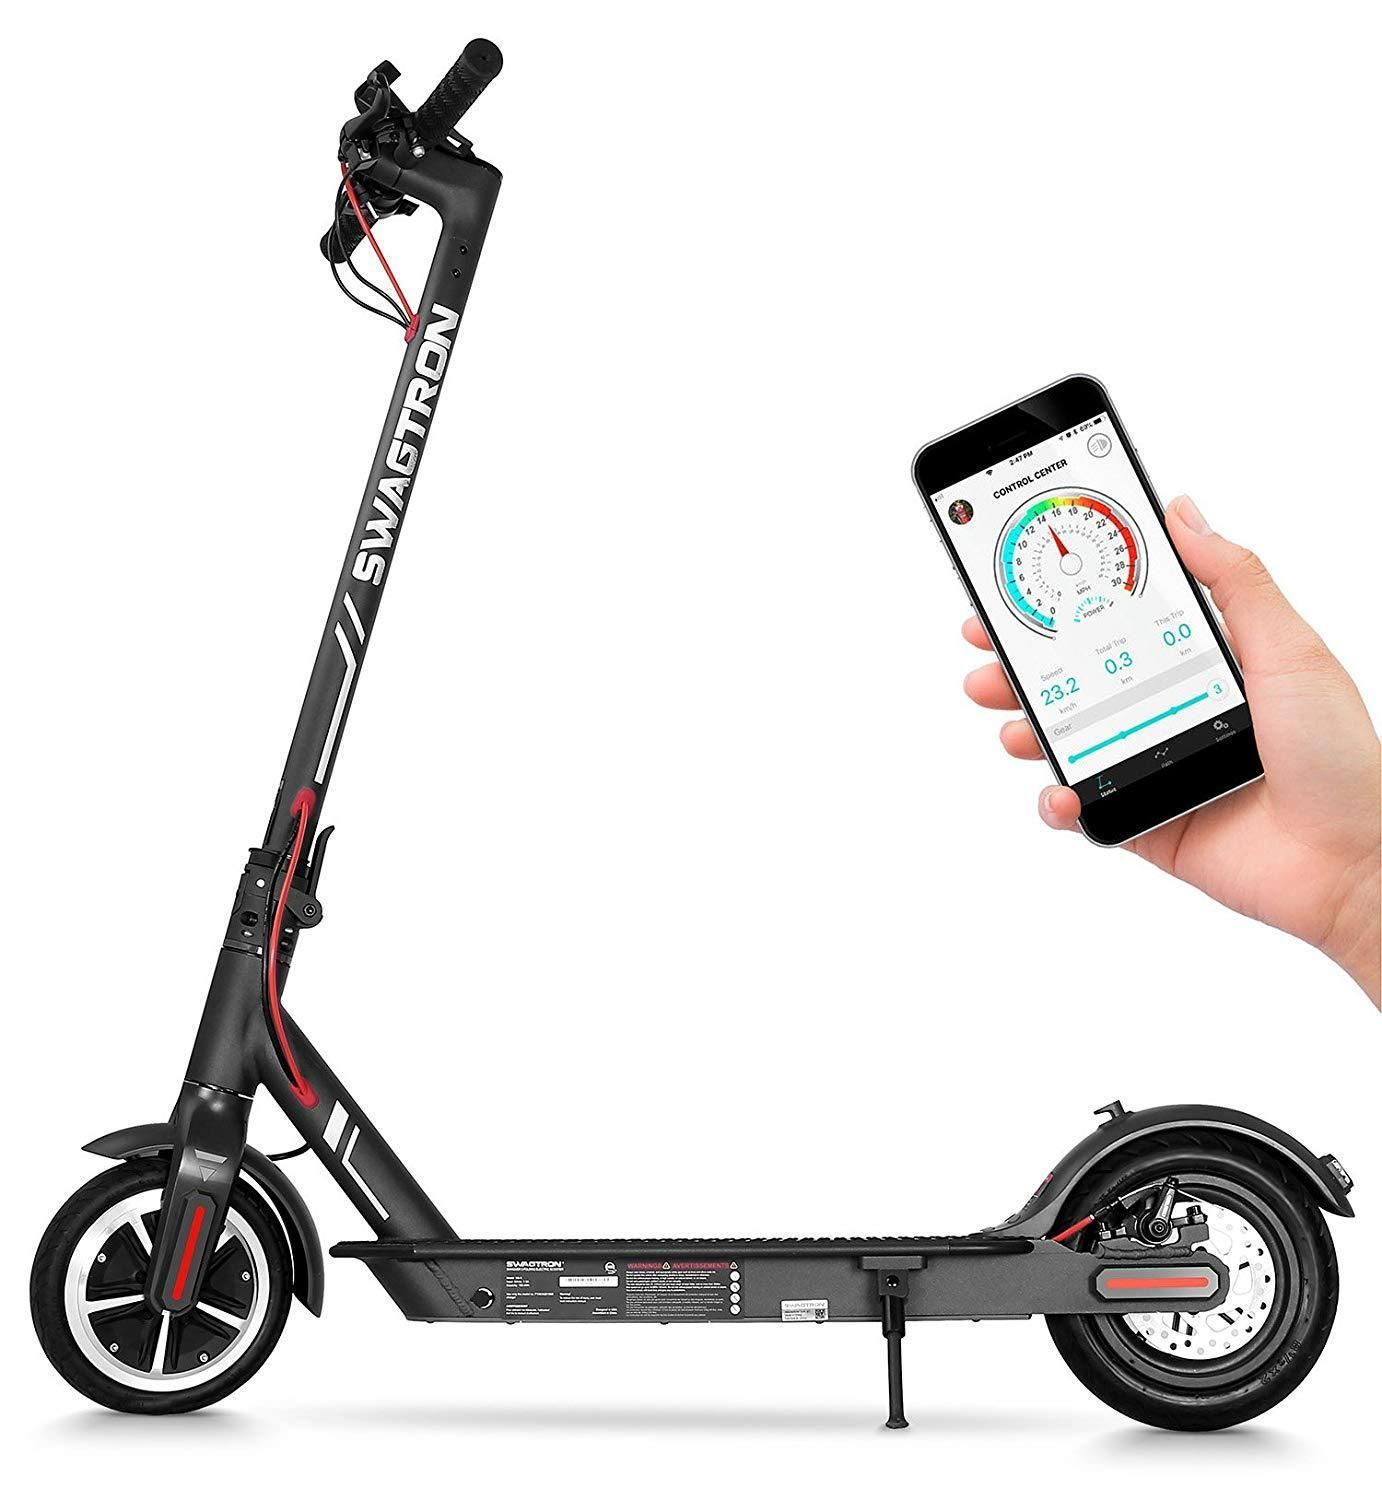 Swagtron Swagger 5 Elite Portable And Foldable Electric Scooter Version 2 270 99 Free Ship W Prime